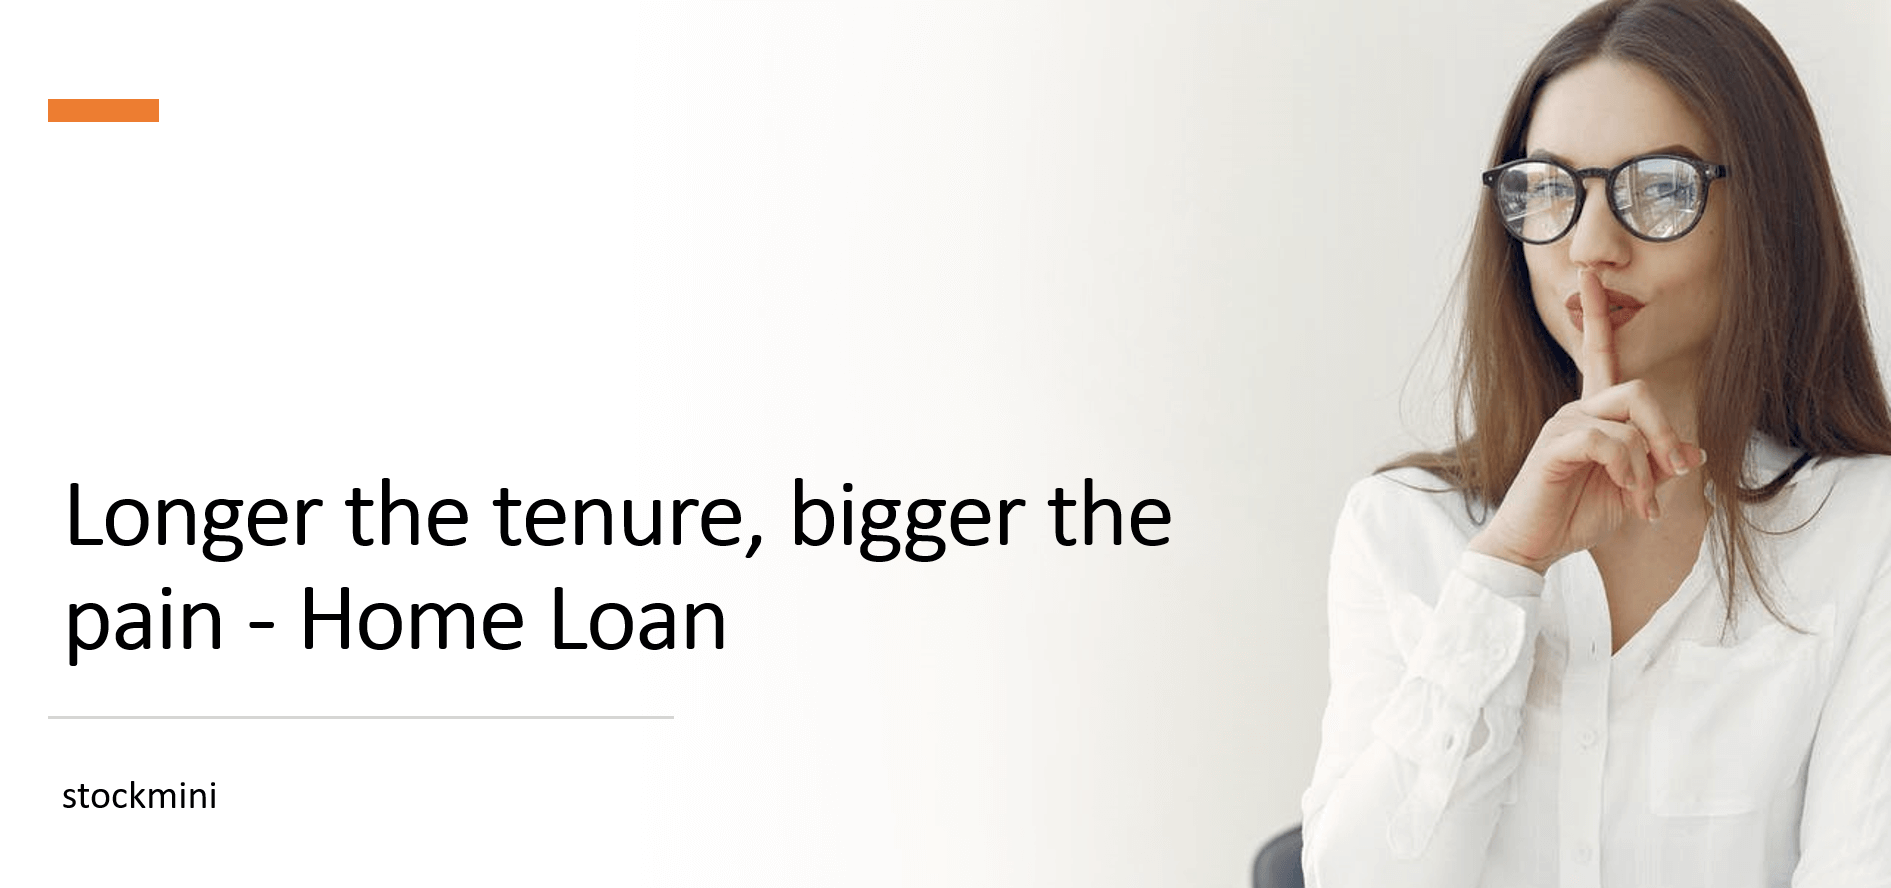 Impact on the interest cost based on your loan tenure